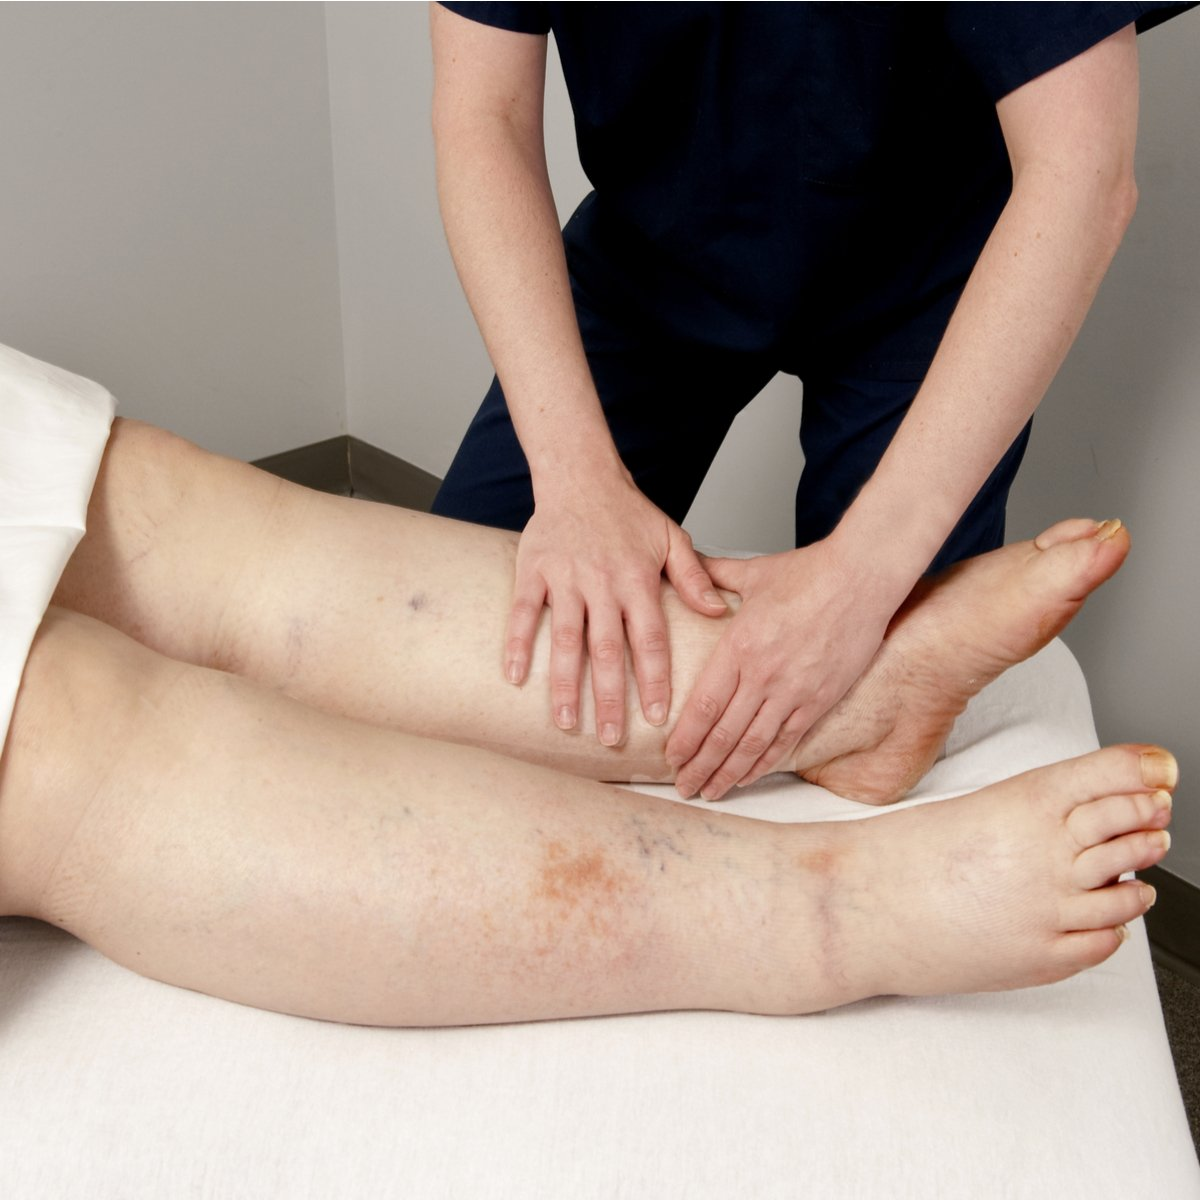 How Can Physical Therapy Help to Treat Lymphedema? featured image